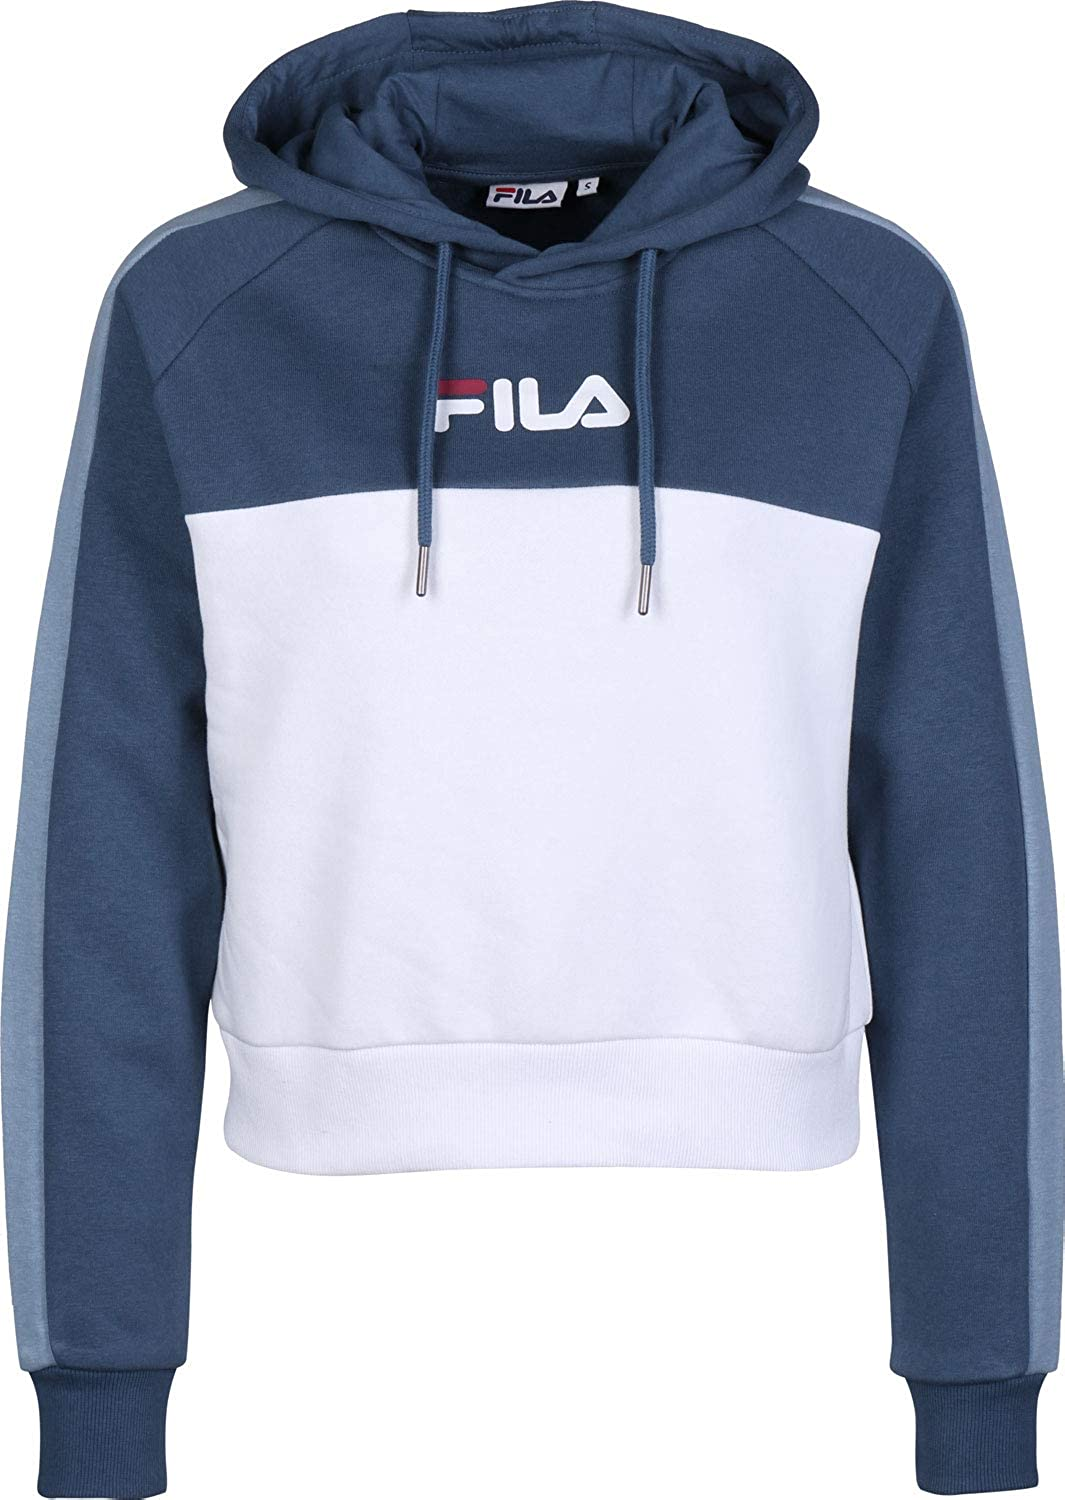 Fila Landers Hooded Sweat WN's, Sweatshirt: Amazon.co.uk